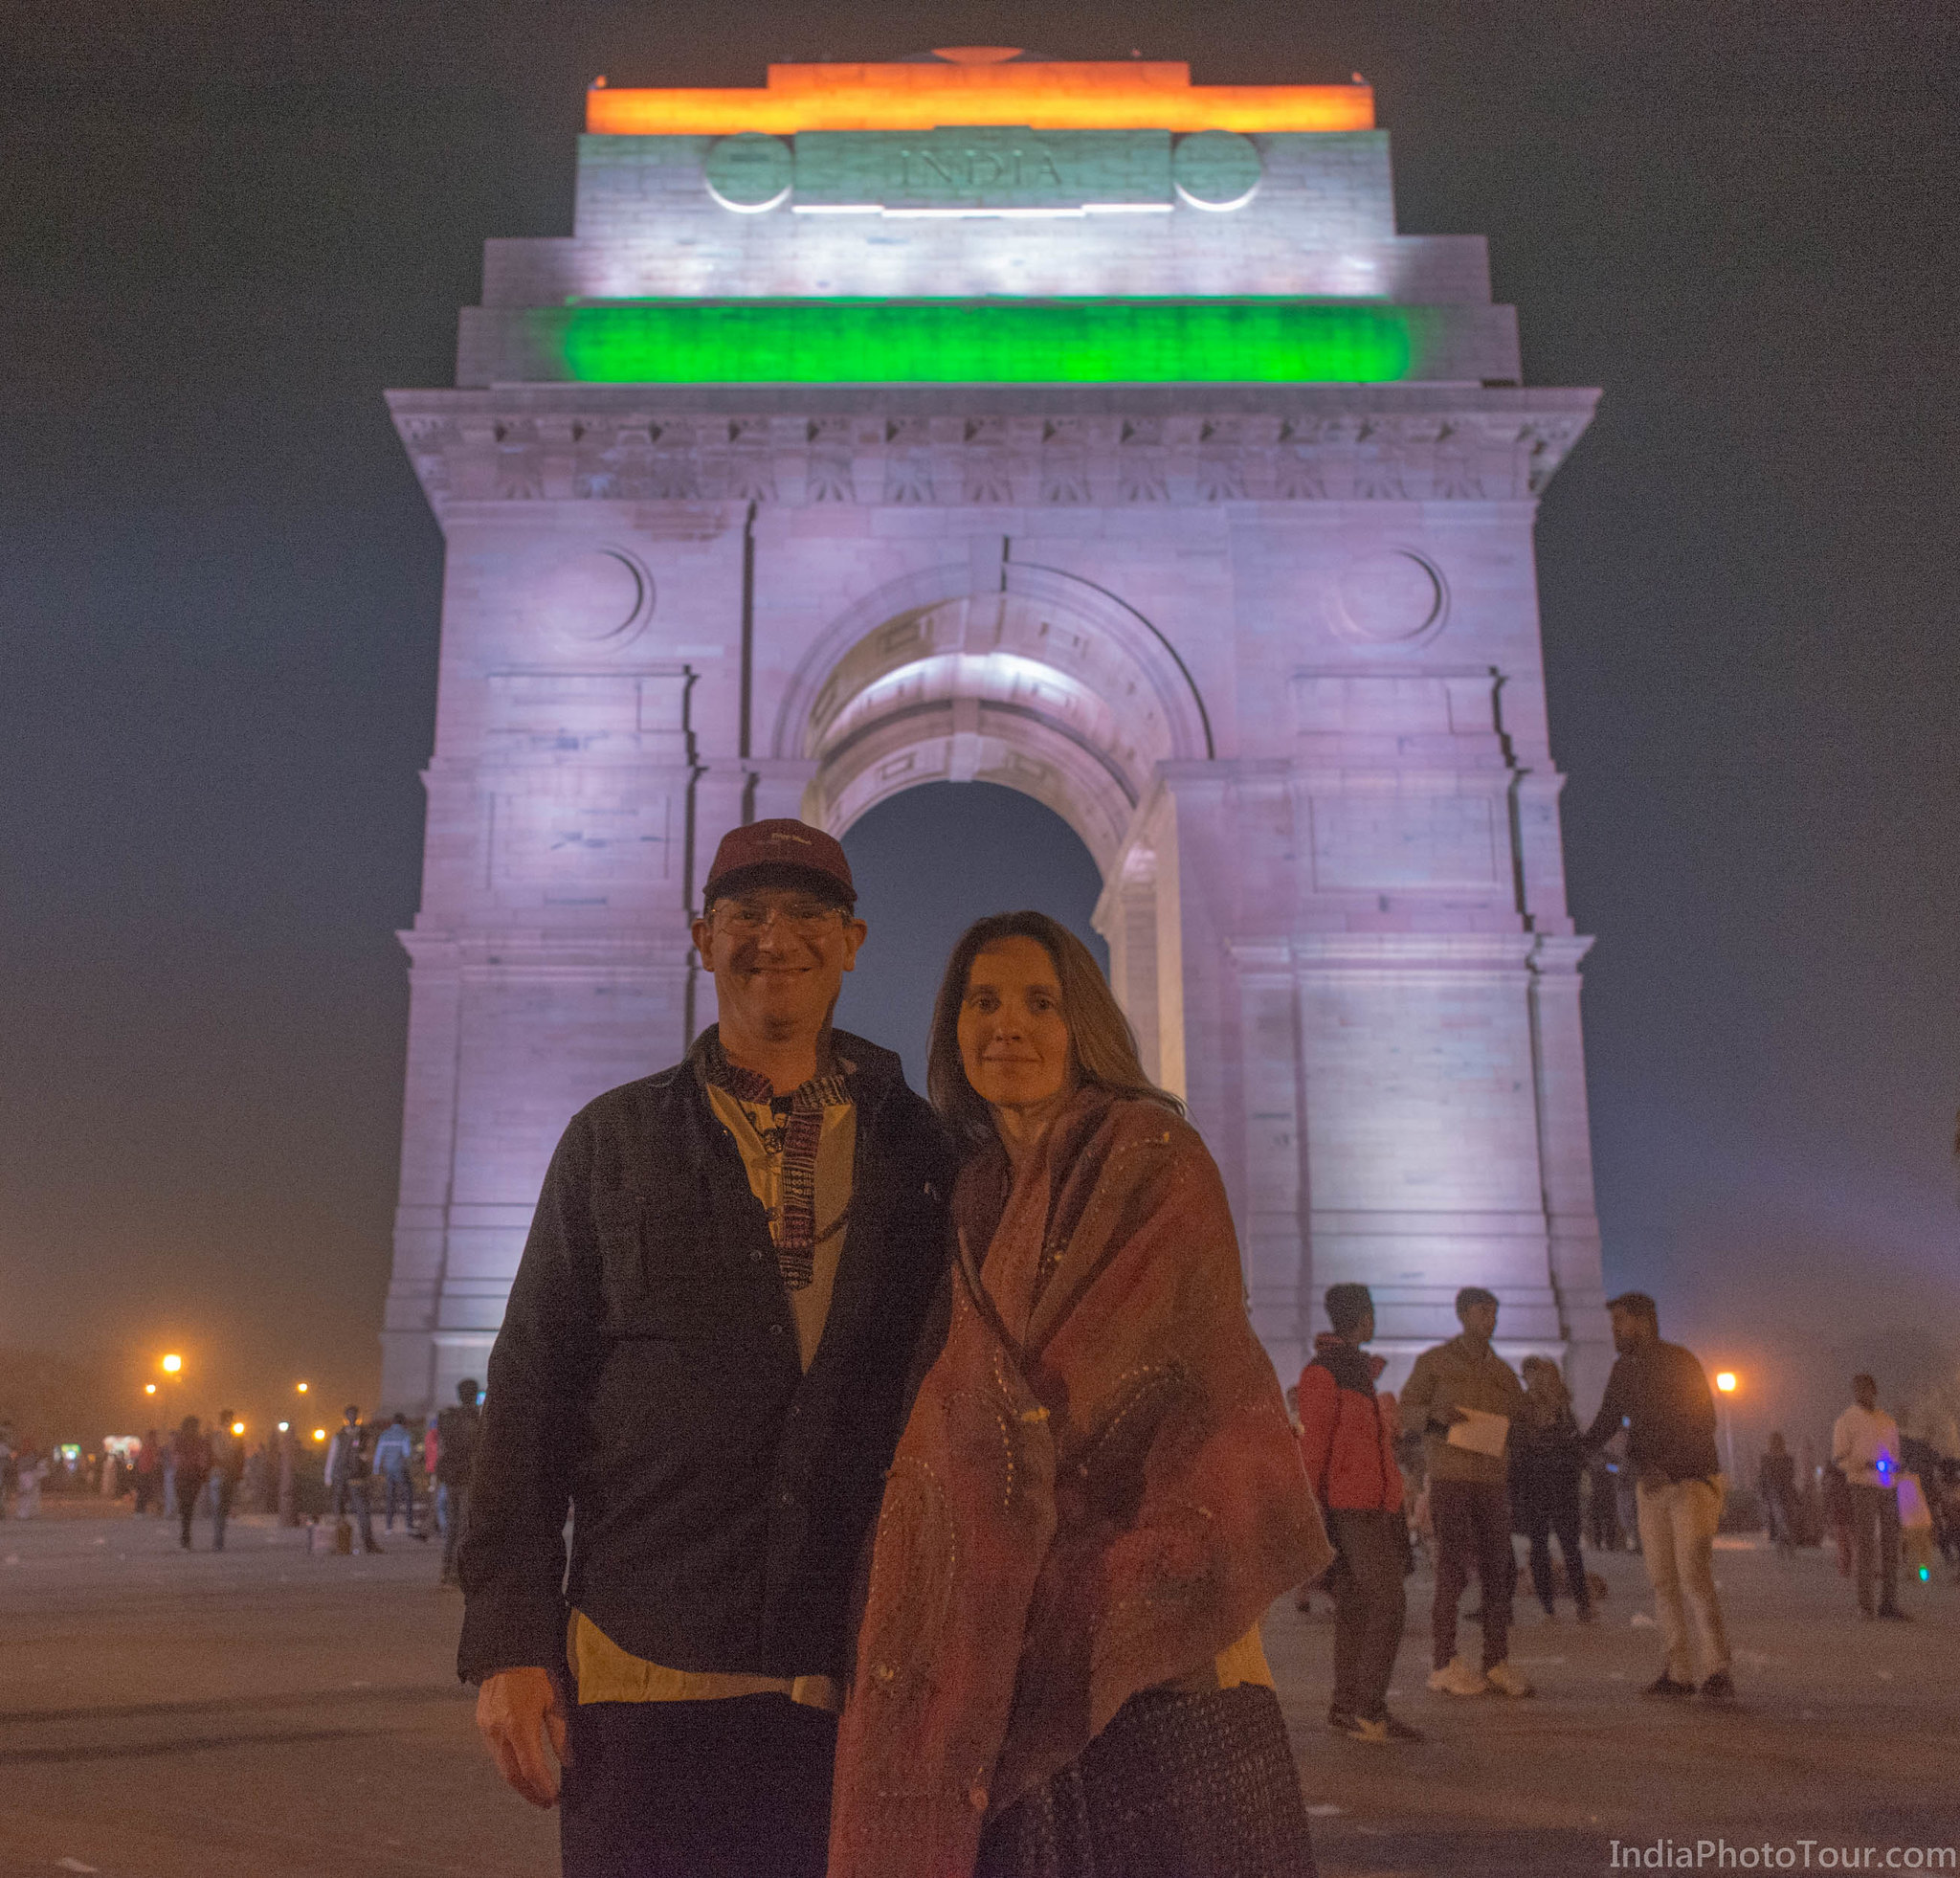 After sunset trip to India Gate